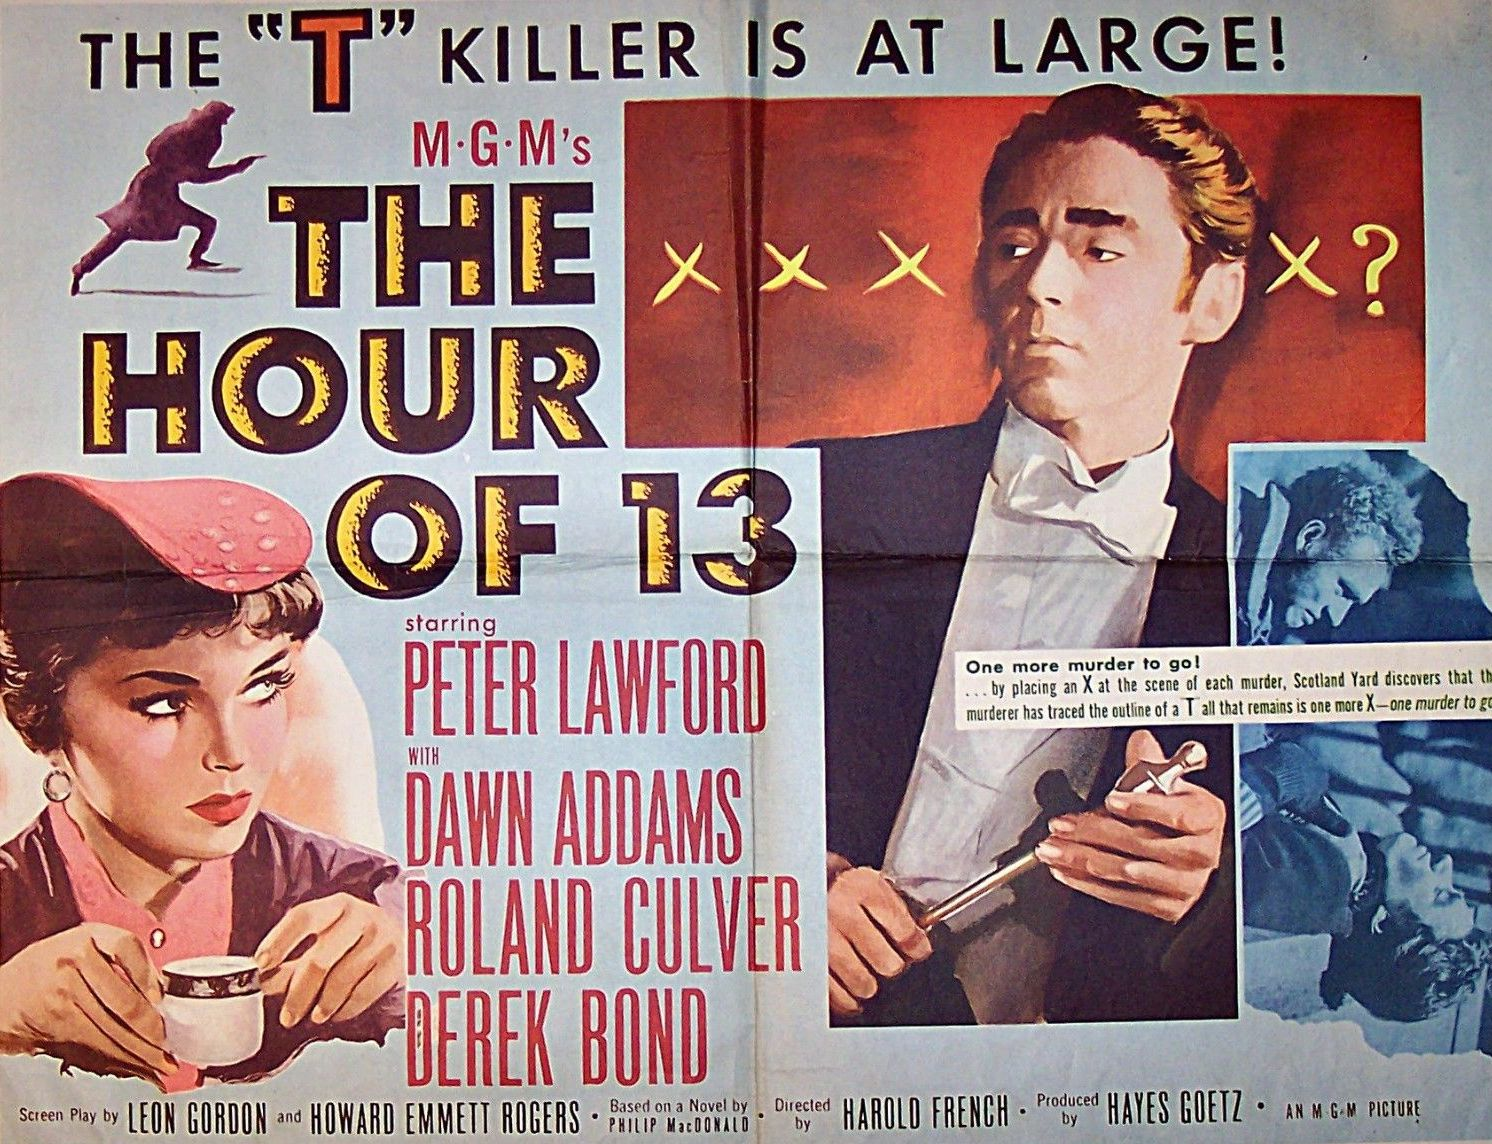 The Hour of 13 (1952)